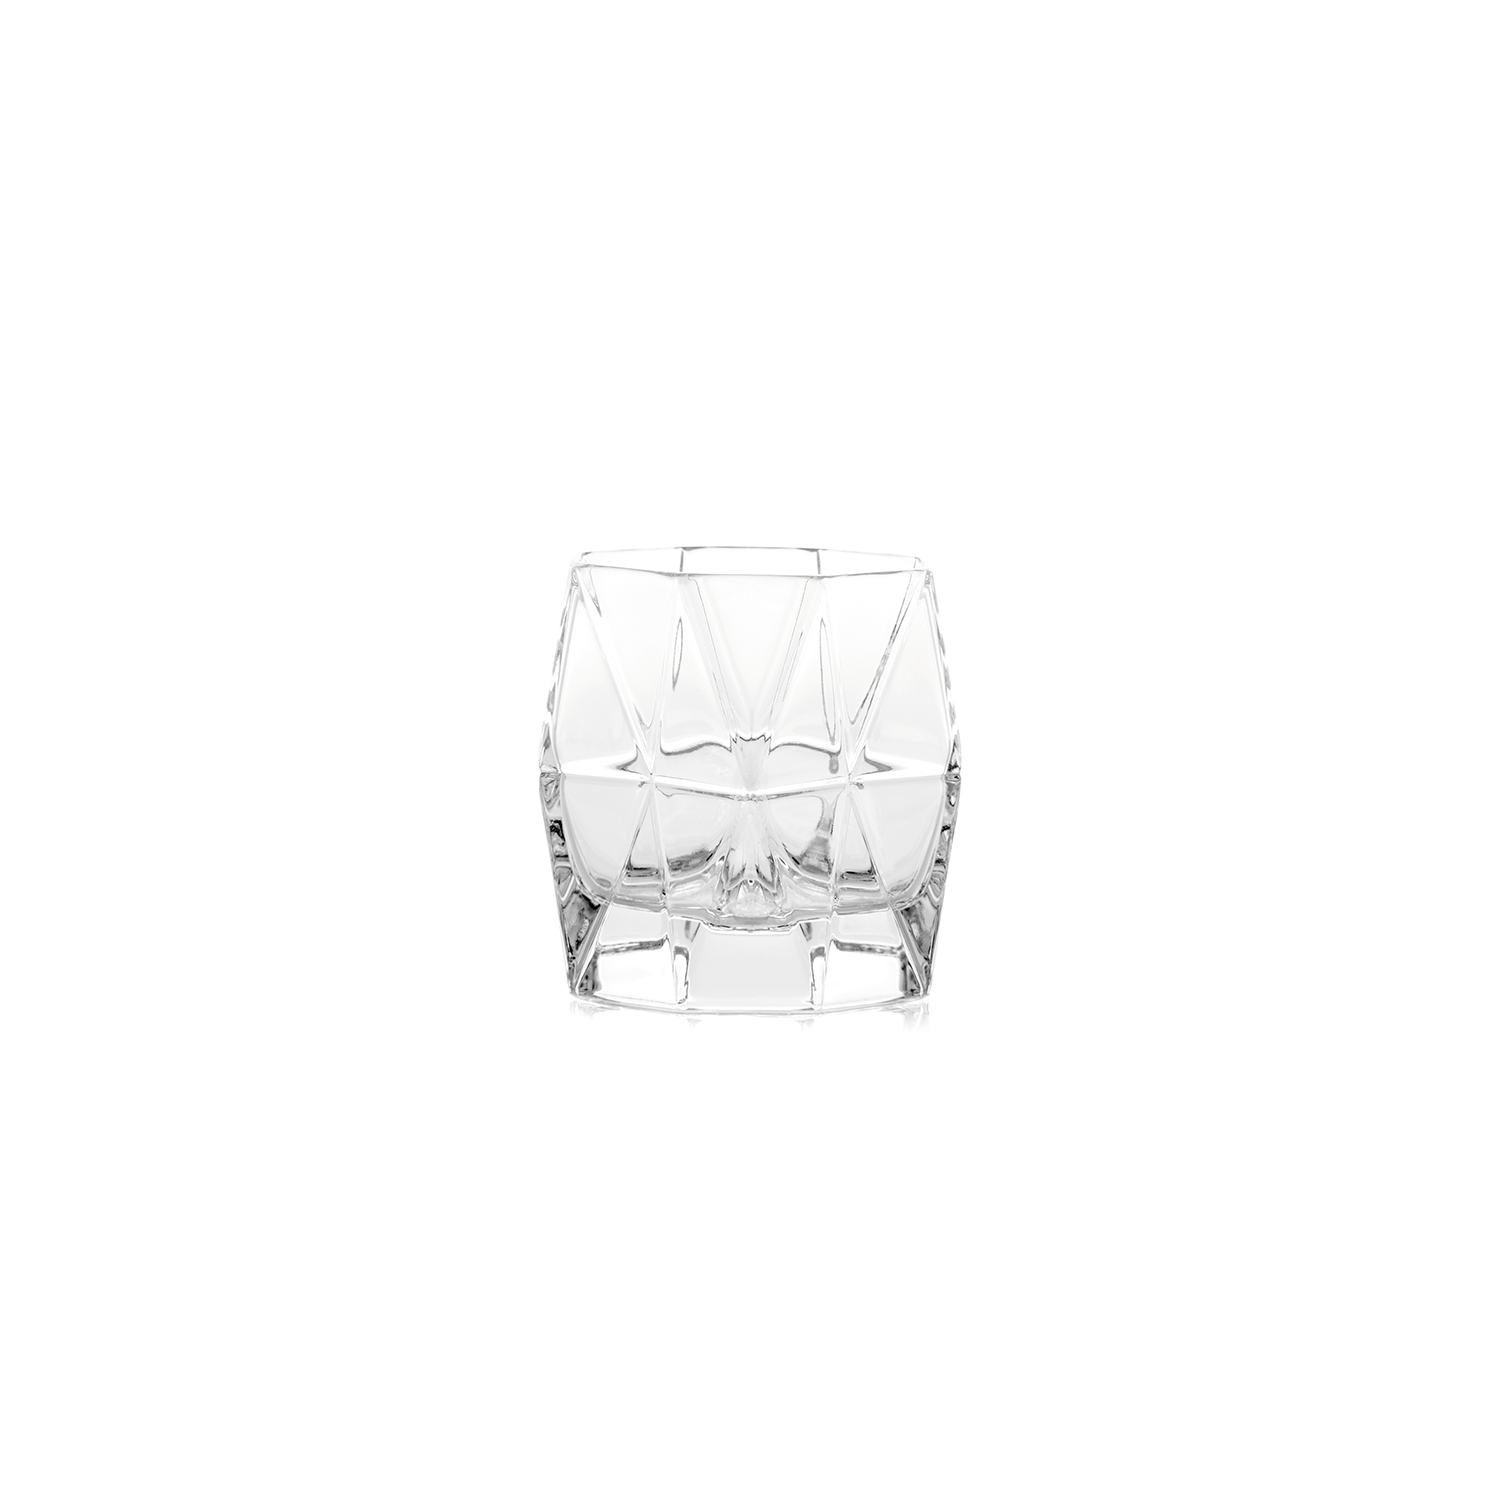 Diamond Glasses Set of 6 - The Diamond crystal glasses collection exudes sophistication and style. The crystalline and multifaceted surface gives the glass a distinctive yet still externally elegant character. Suitable for any kind of situation, Diamond is ideal for serving soft drinks or spirits.   | Matter of Stuff